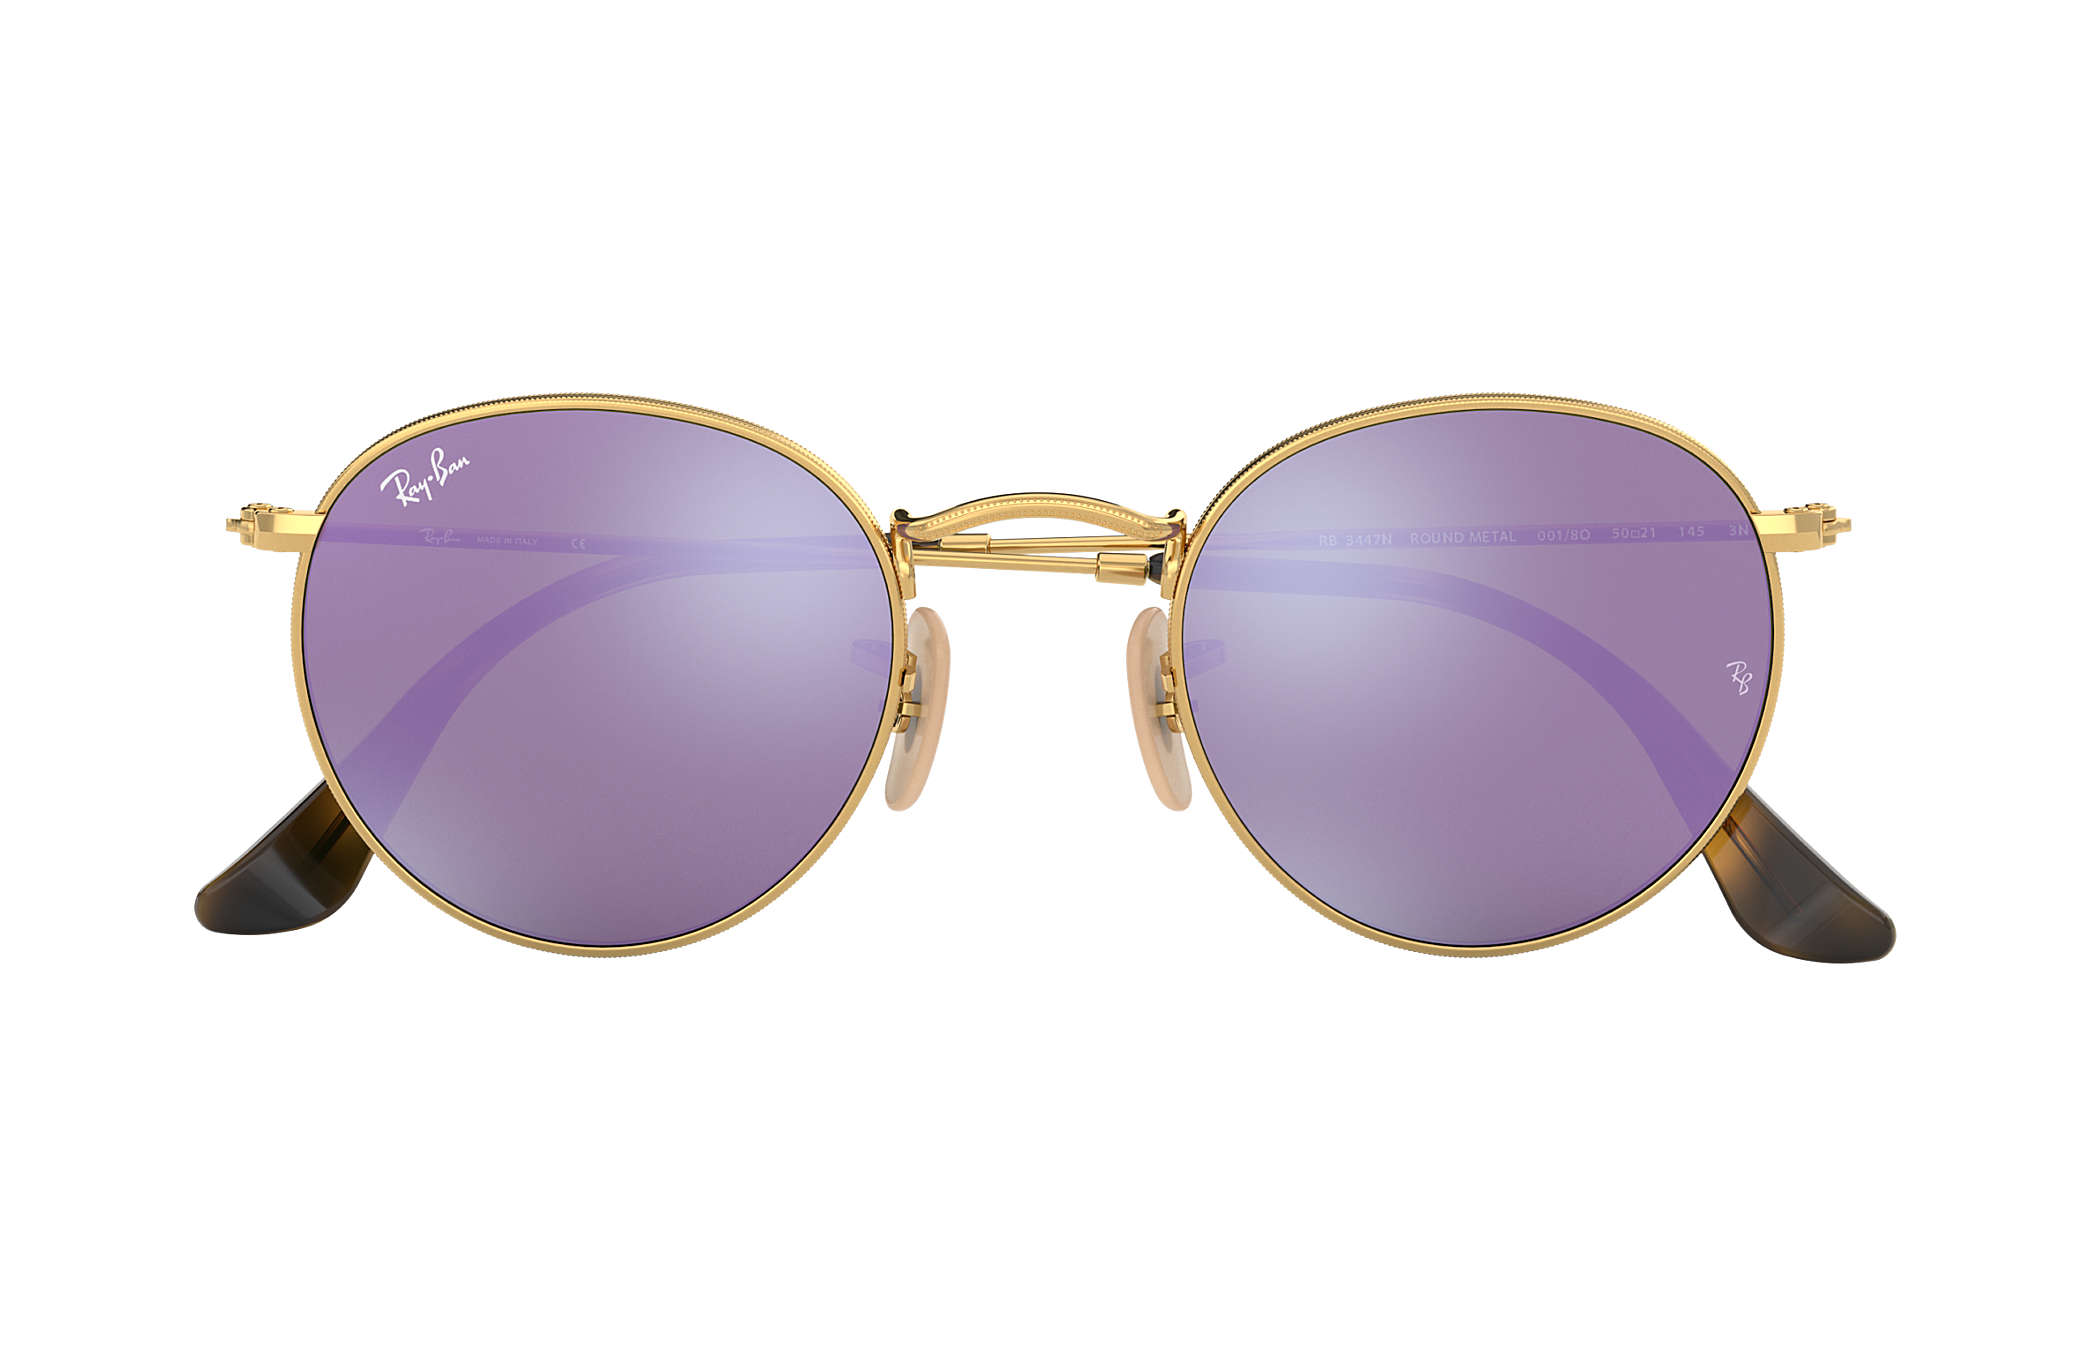 b5f7a0a774 Ray-Ban Round Flat Lenses RB3447N Gold - Metal - Lilac Lenses ...